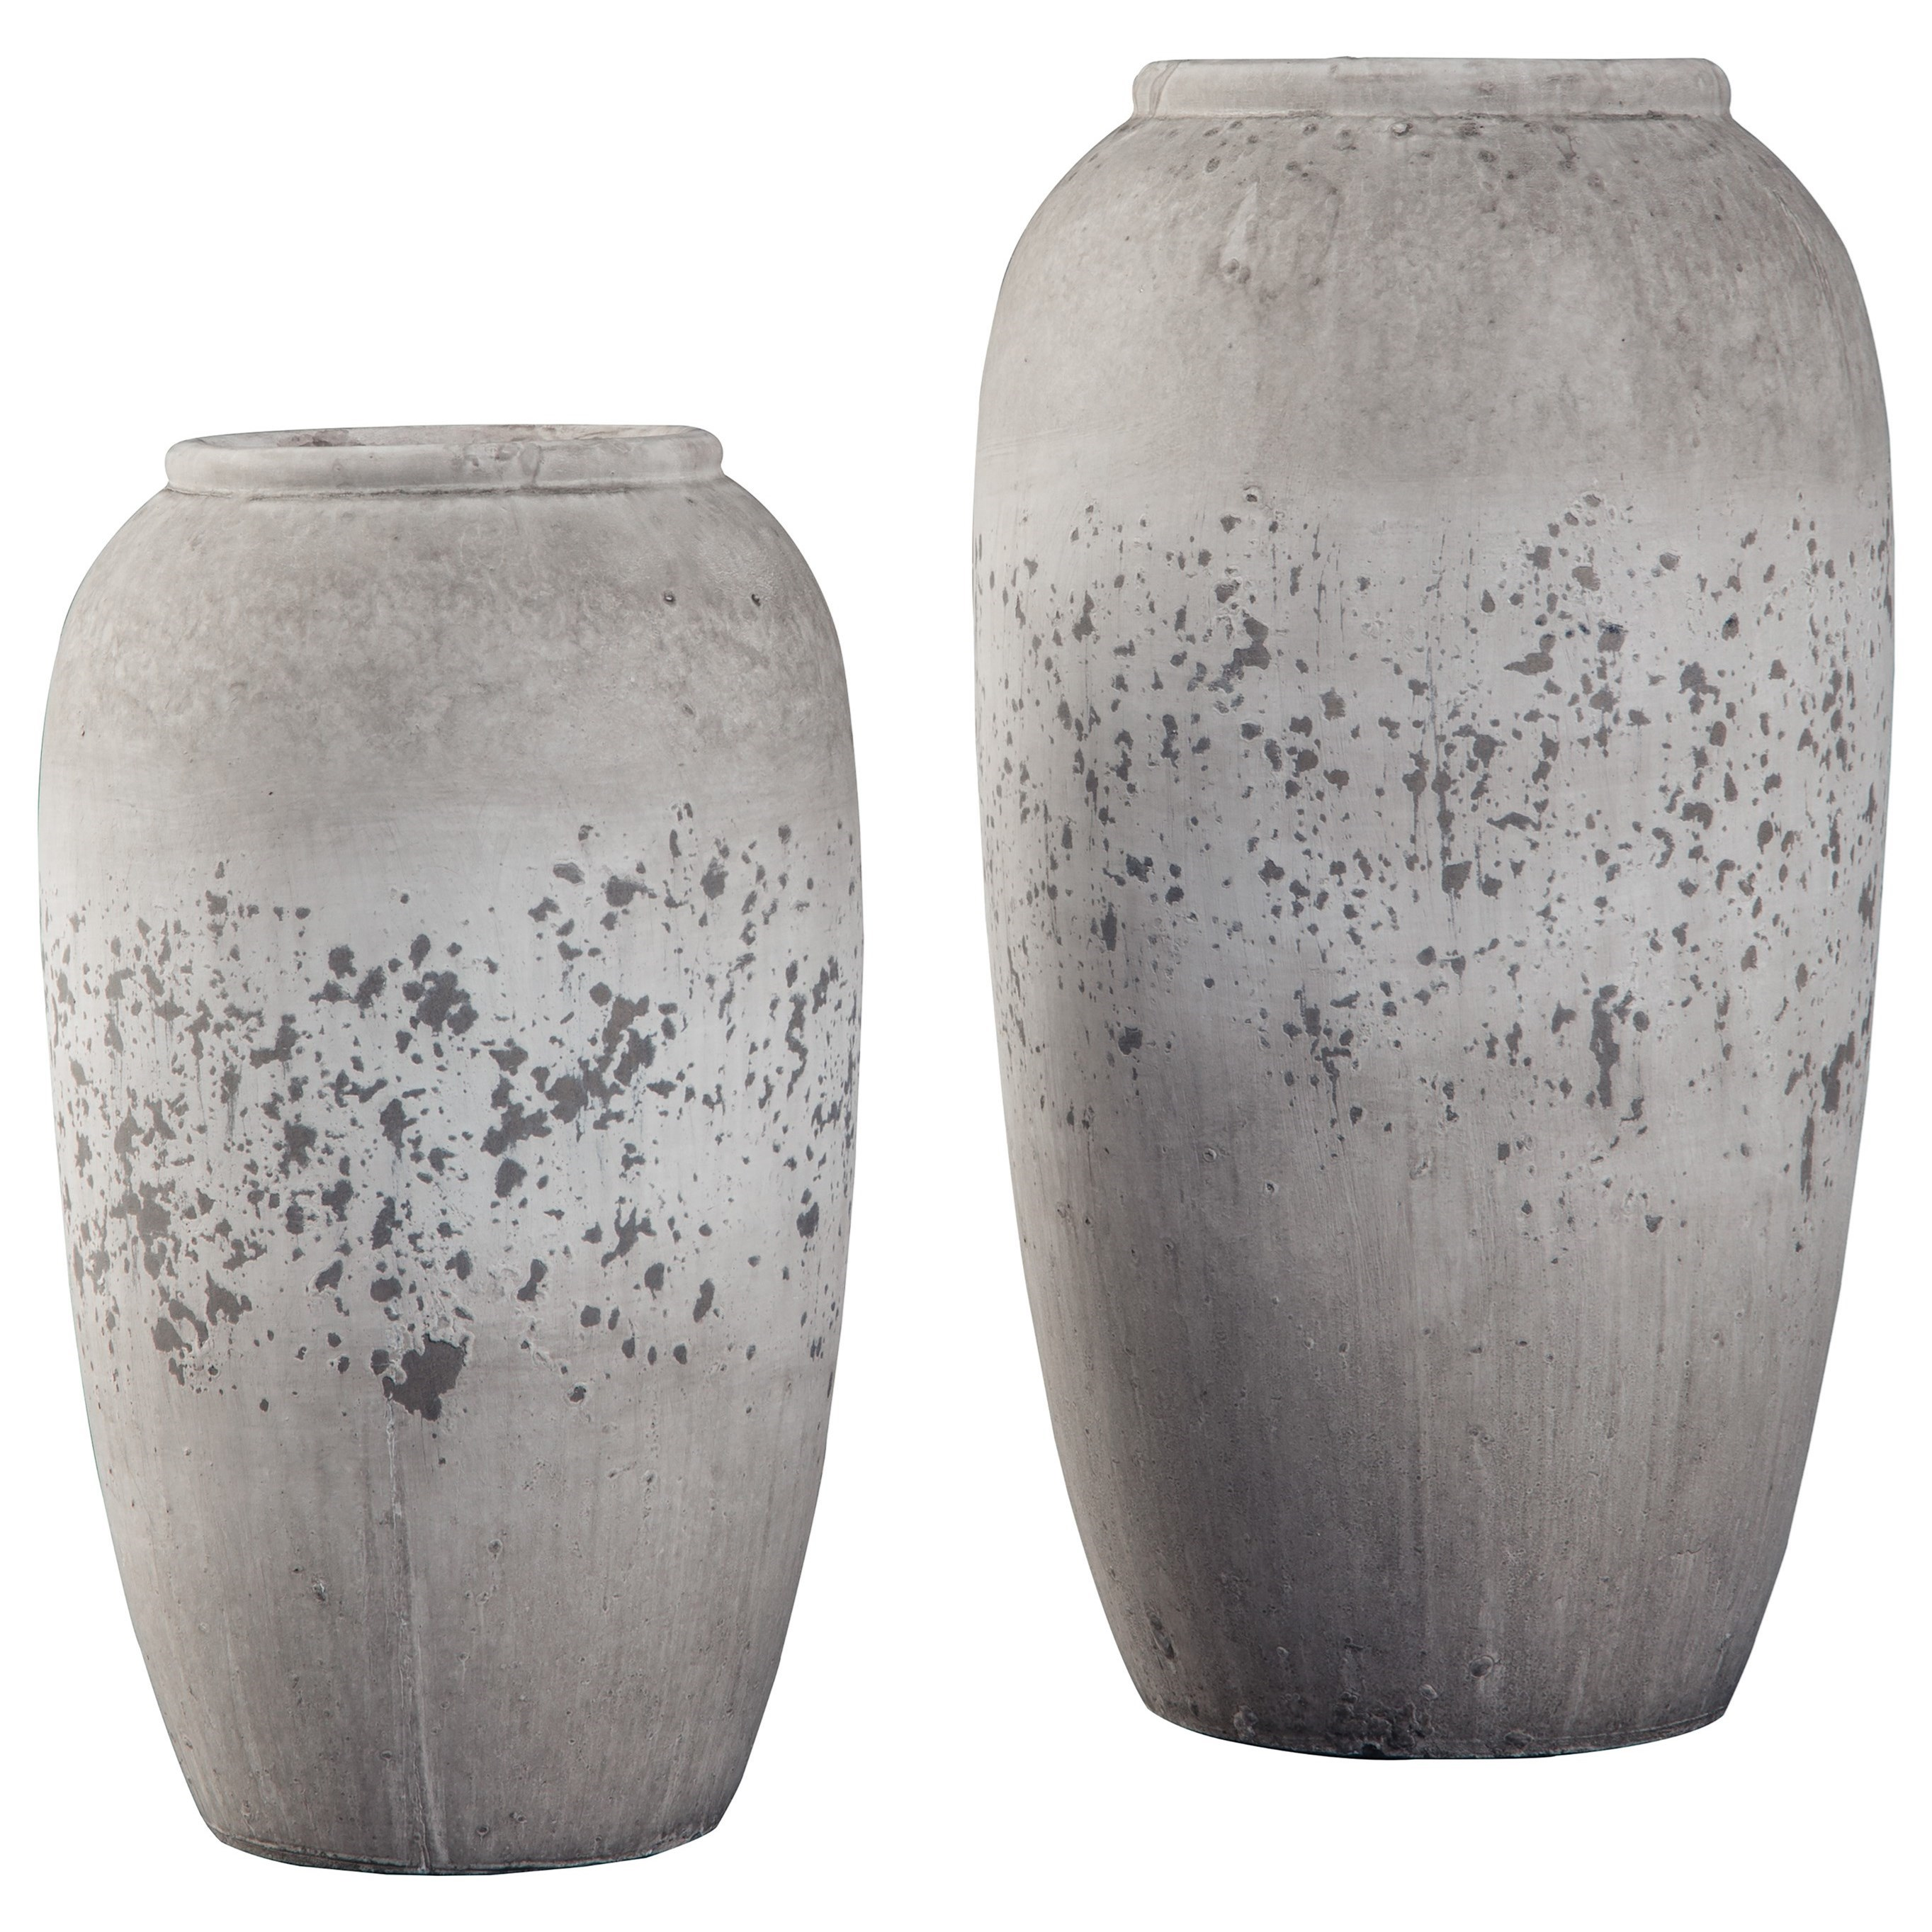 Accents Dimitra Brown/Cream Vase Set by Ashley Furniture Signature Design at Del Sol Furniture